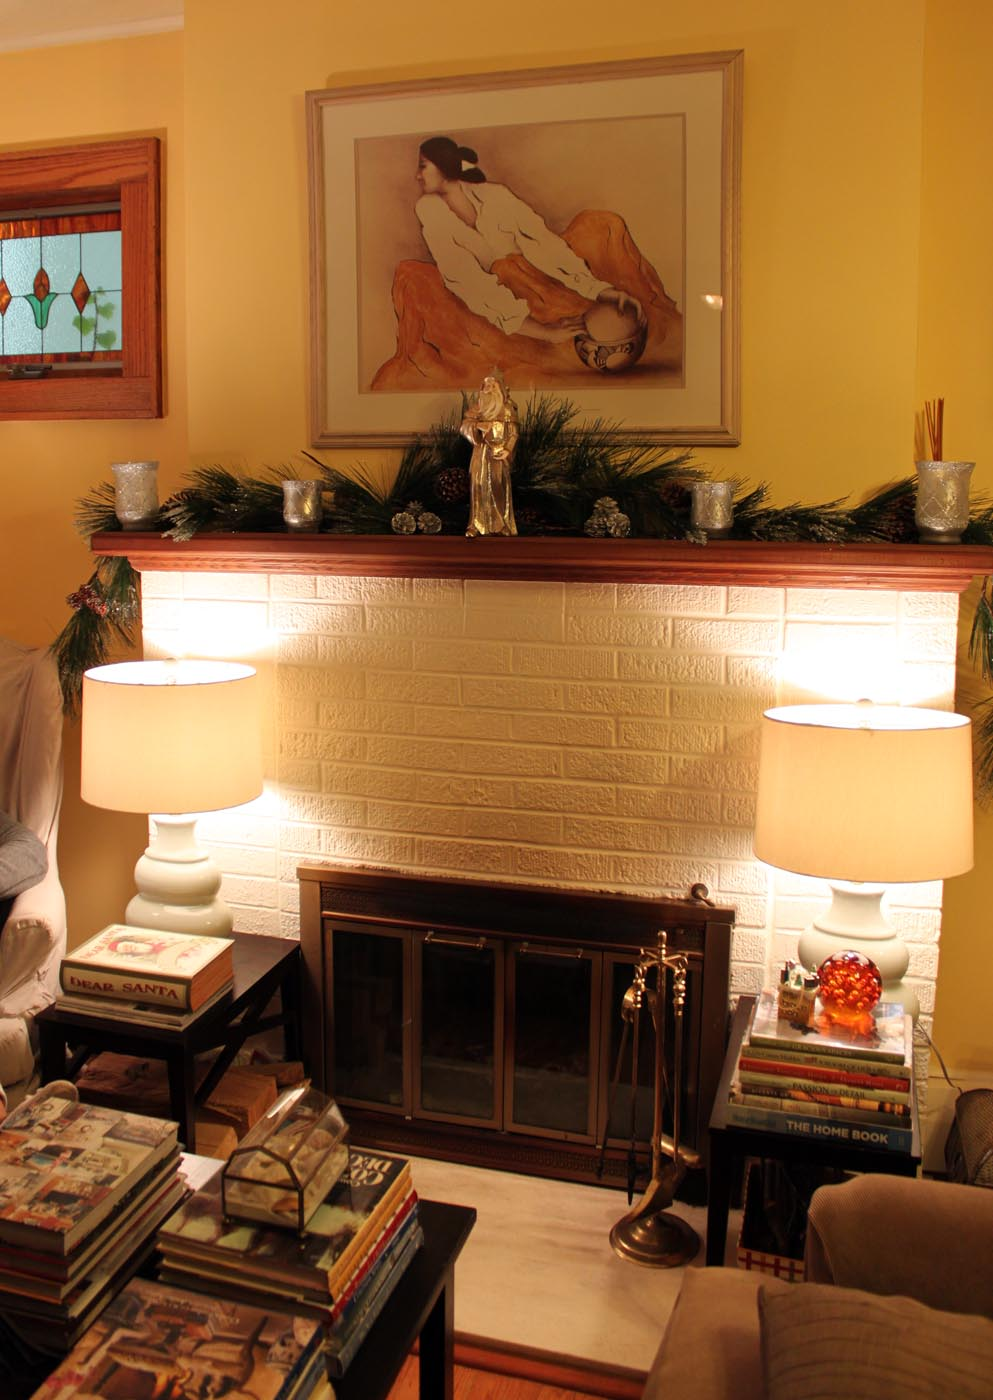 My great challenge christmas house tour 2012 for S carey living room tour